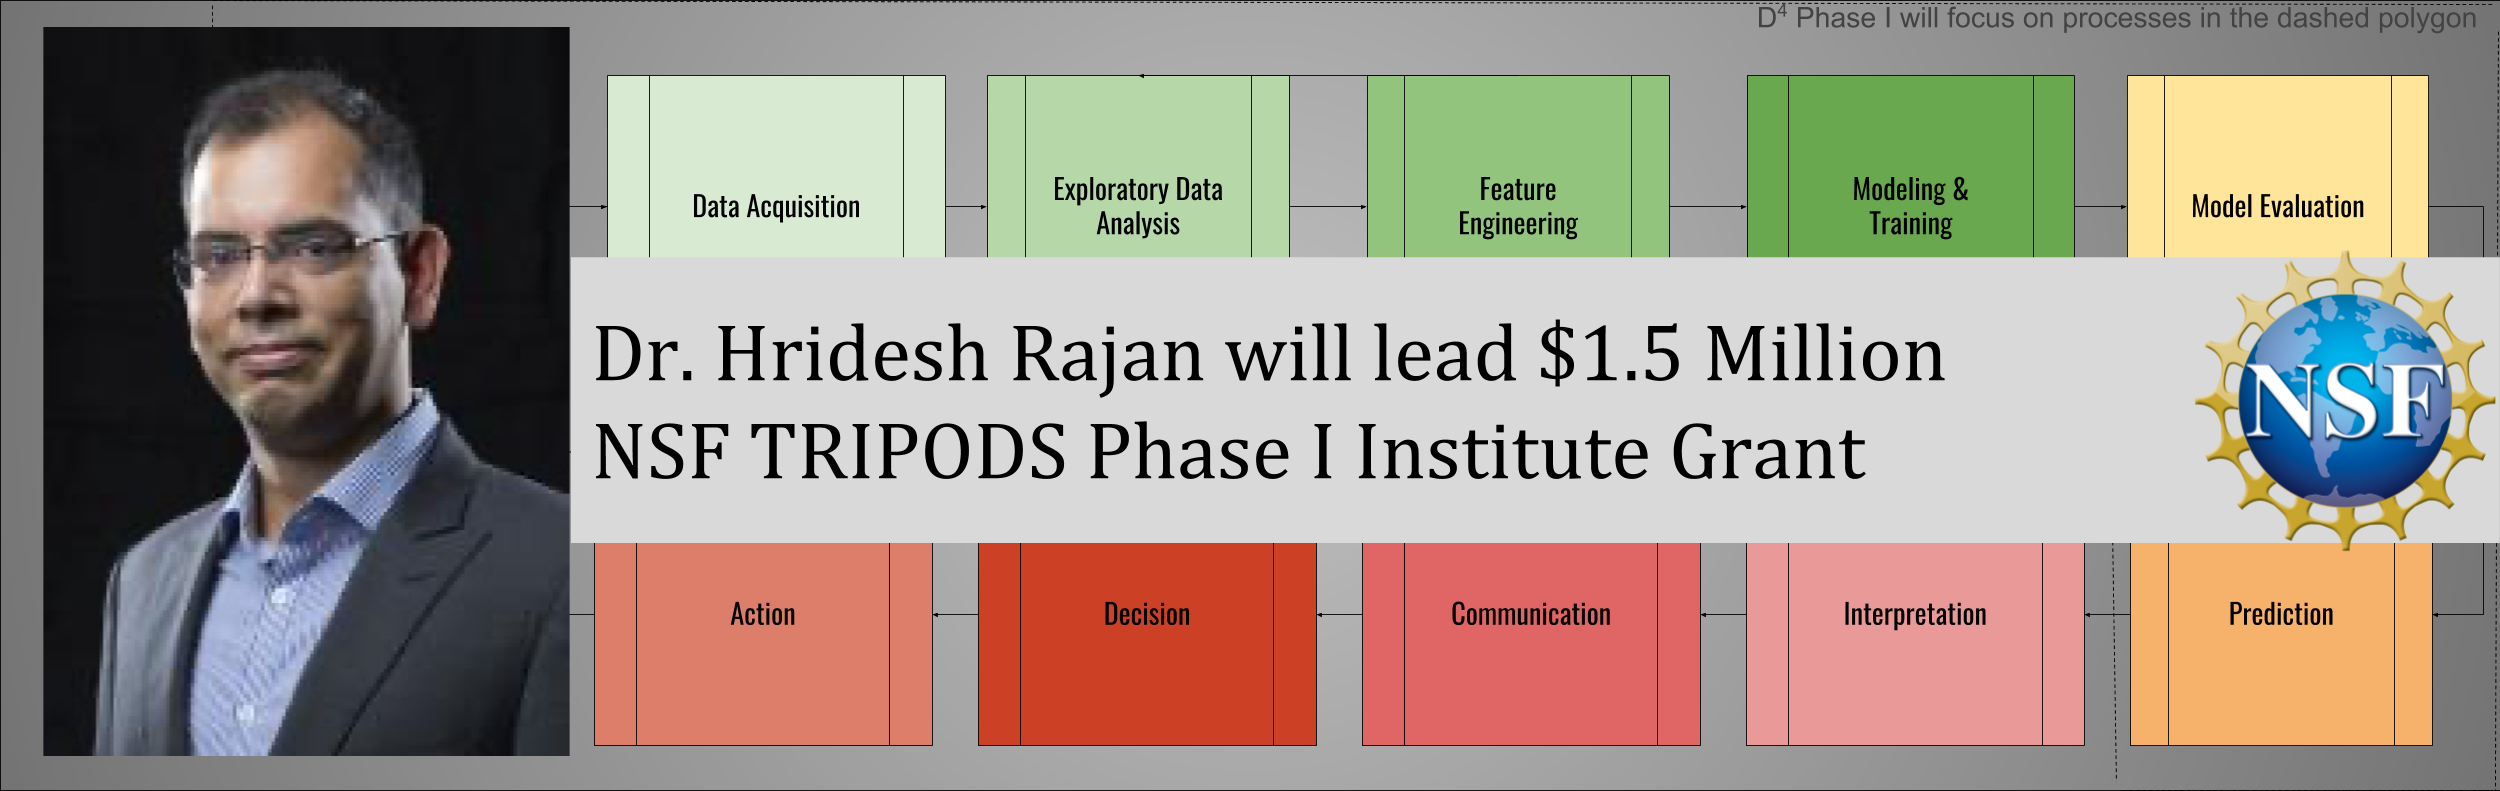 Dr. Hridesh Rajan will lead $1.5 Million NSF TRIPODS Phase I Institute Grant